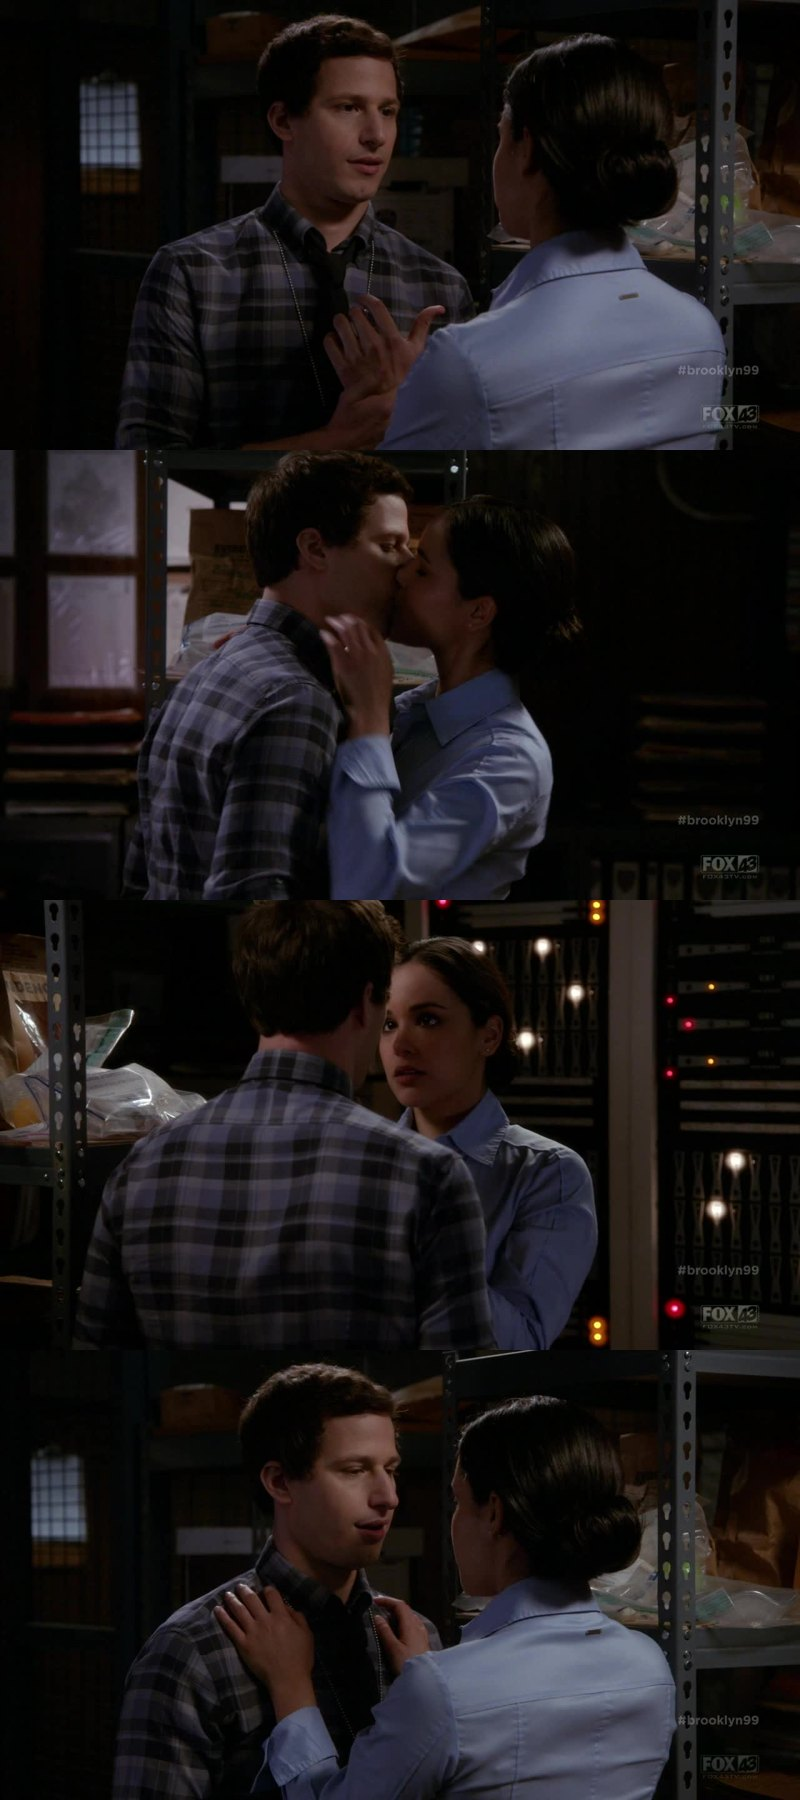 MY HOLY COW THIS SCENE WAS EXPLODING OF SEXUAL TENSION. ANDY SAMBERG AND MELISSA FUMERO ARE CHEMISTRY GOAL AF.